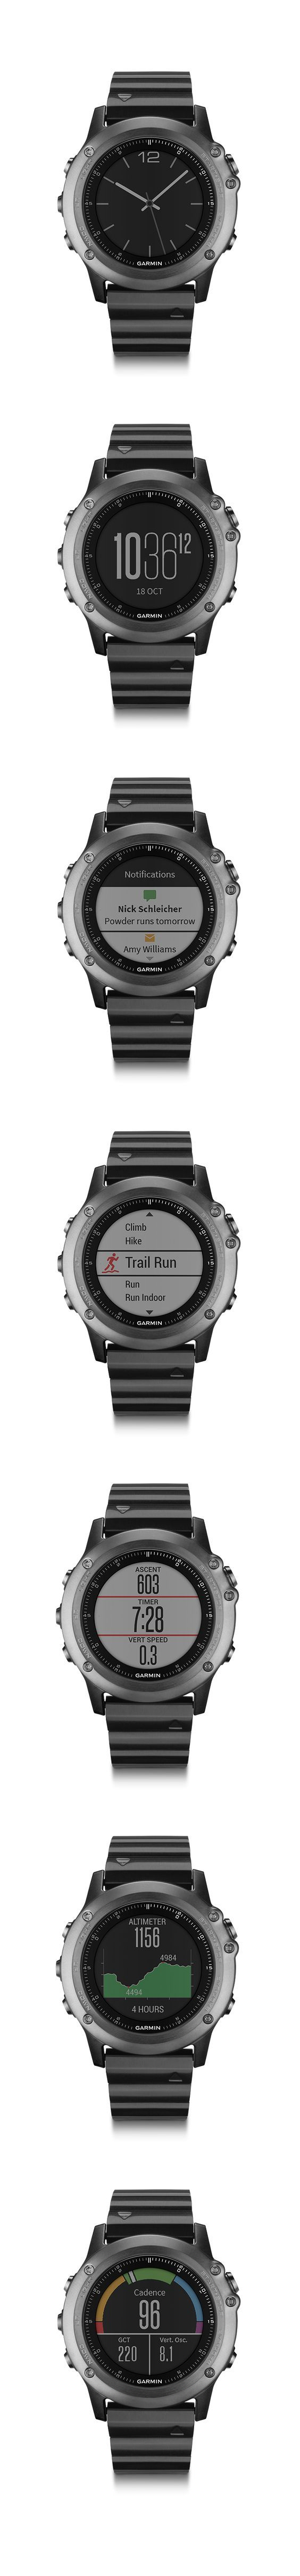 pulse prayer watches baseball watch products